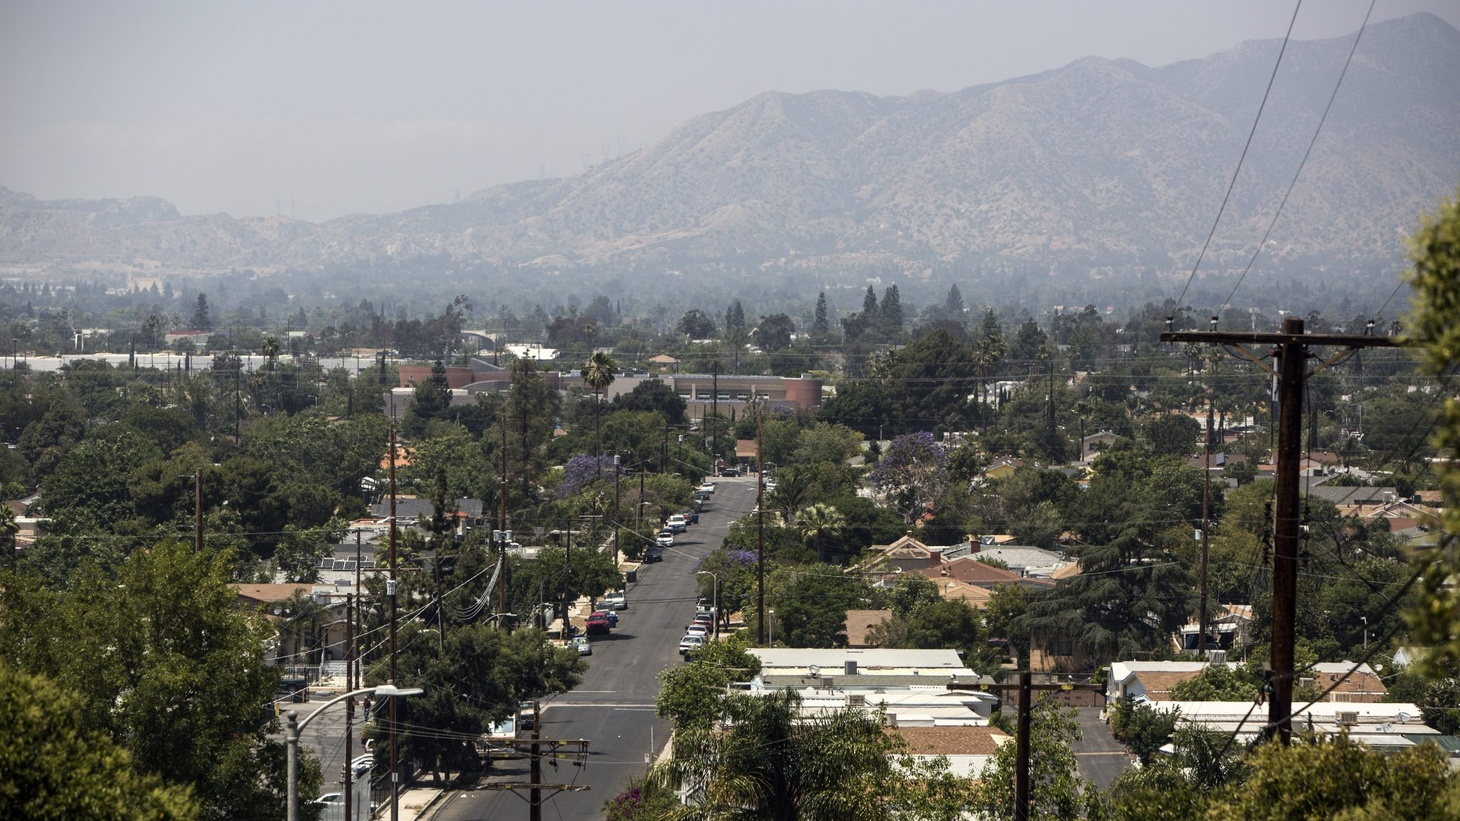 With over 1.7 million inhabitants, the San Fernando Valley is one of California's largest suburban sprawls. (Photo: Dania Maxwell)